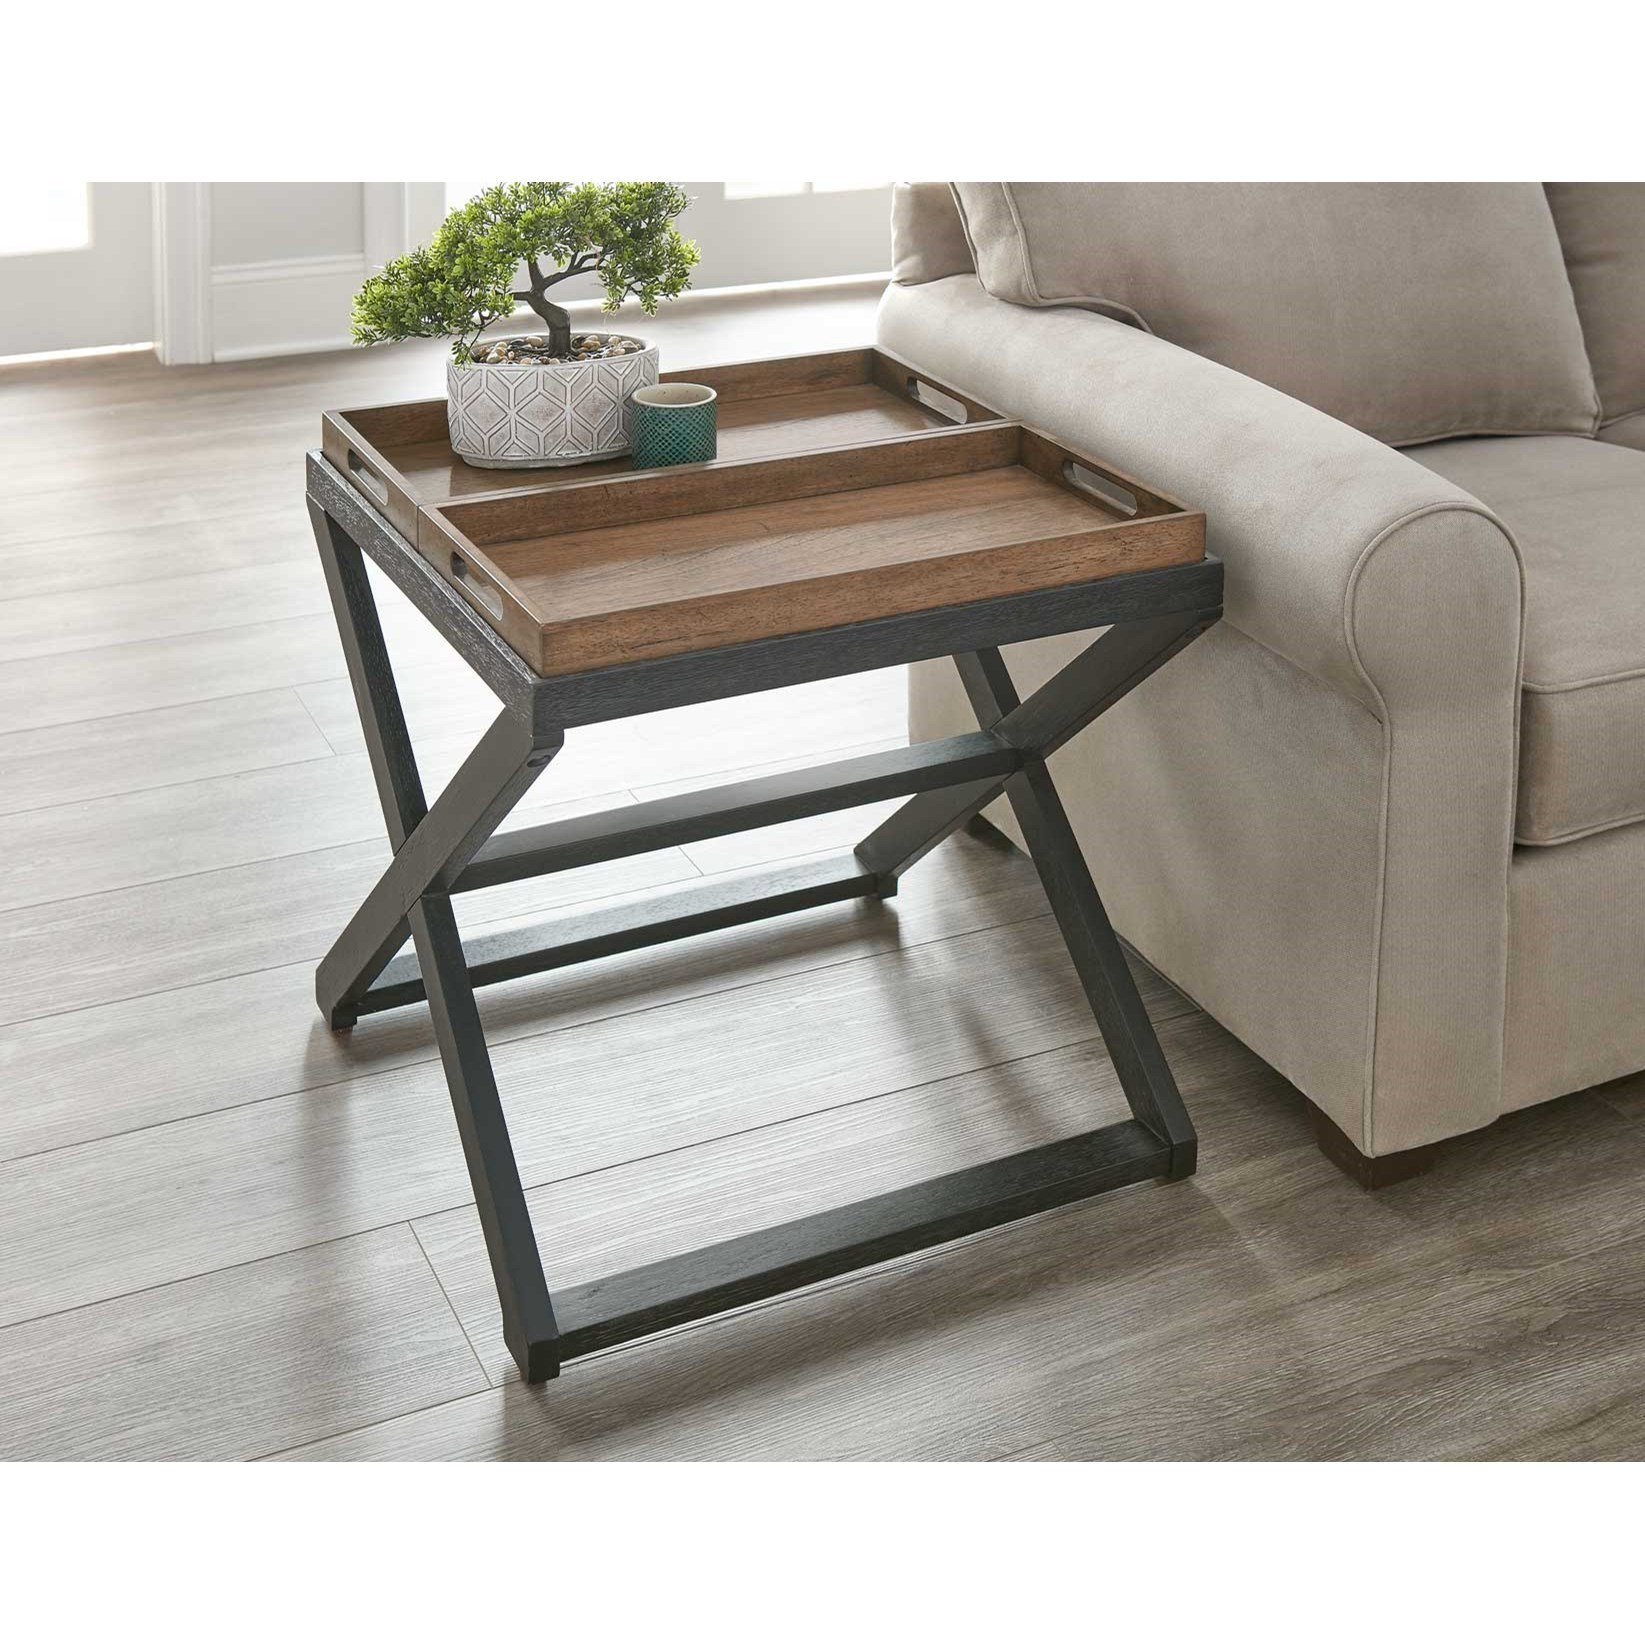 Topeka End Table by Steve Silver at Northeast Factory Direct